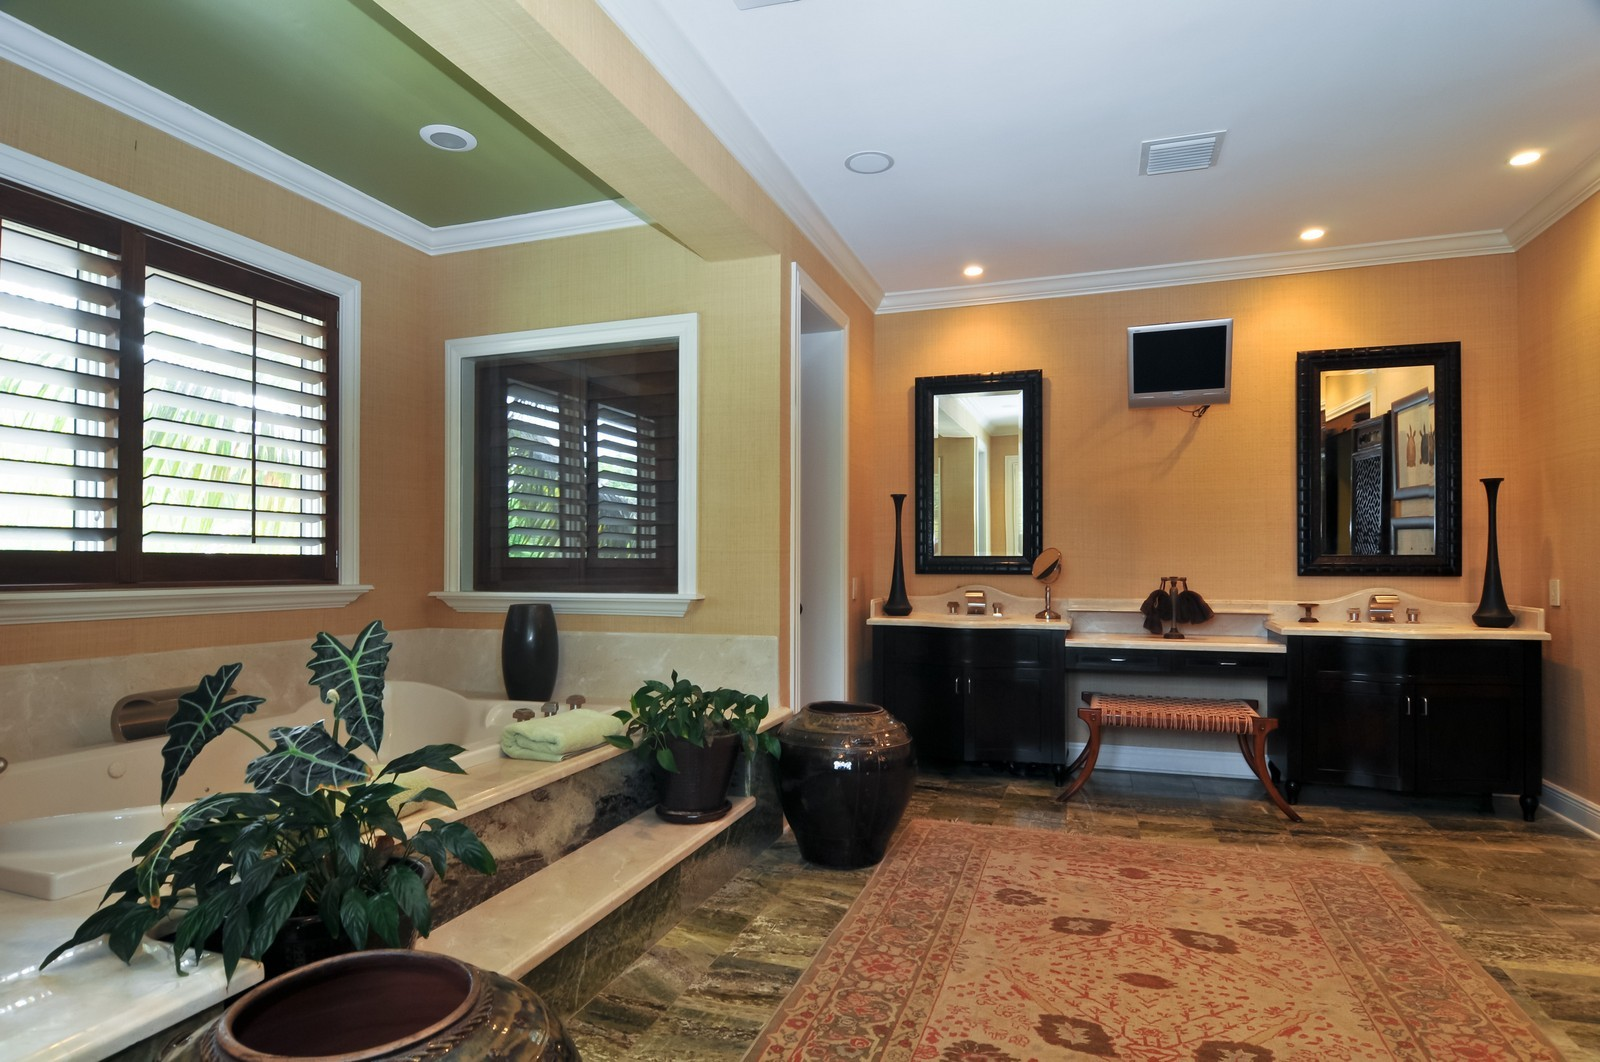 Real Estate Photography - 14200 Farmer Rd, Palmetto Bay, FL, 33158 - Master Bathroom